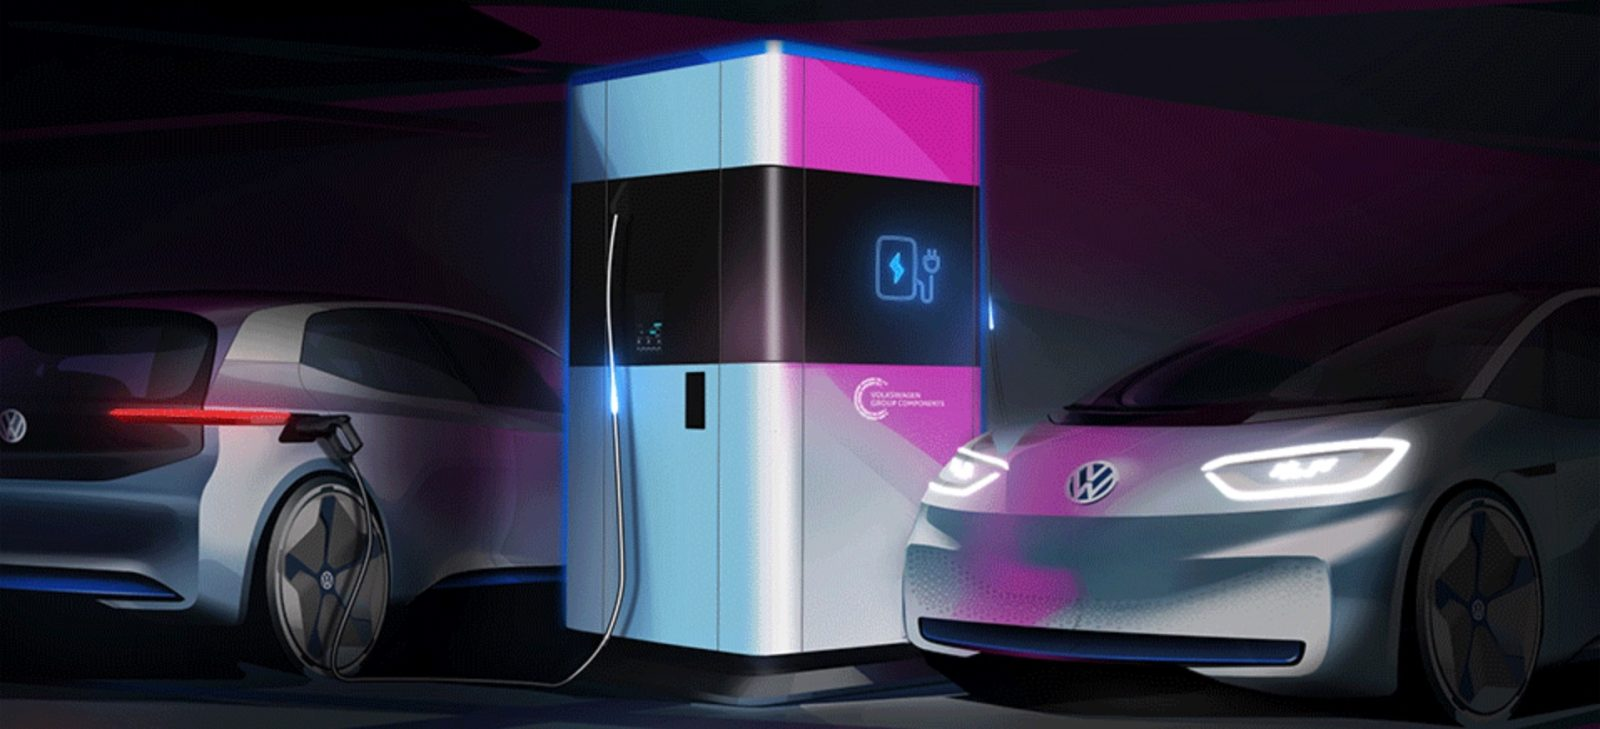 VW announces it will produce its own mobile fast-charging station with 360 kWh battery pack